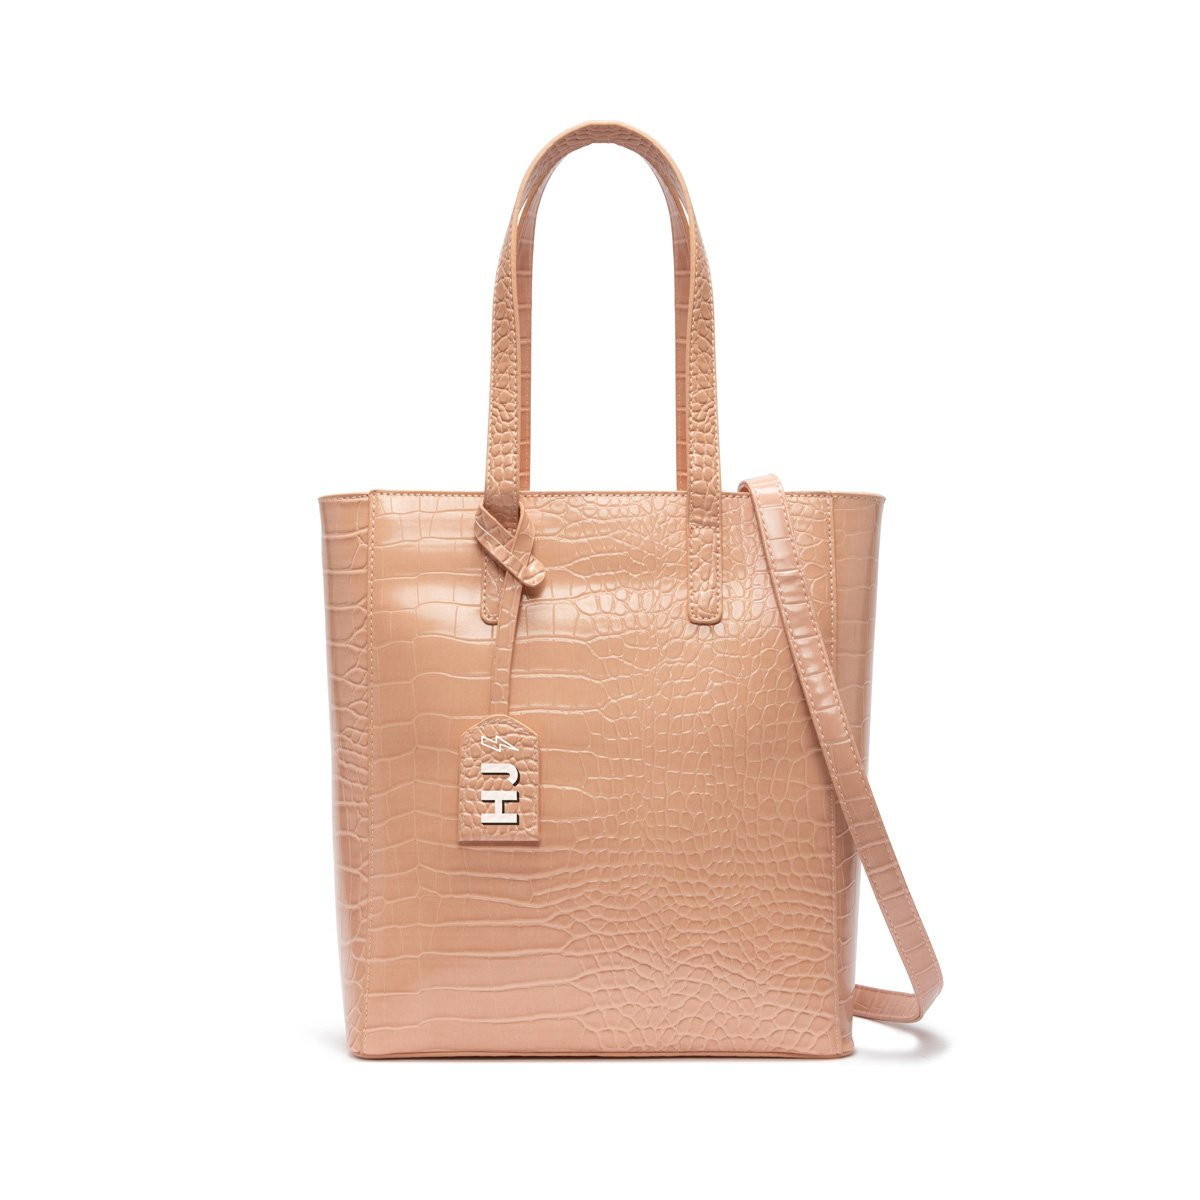 Cora Tote Bag (Nude Peach/Rose Gold)